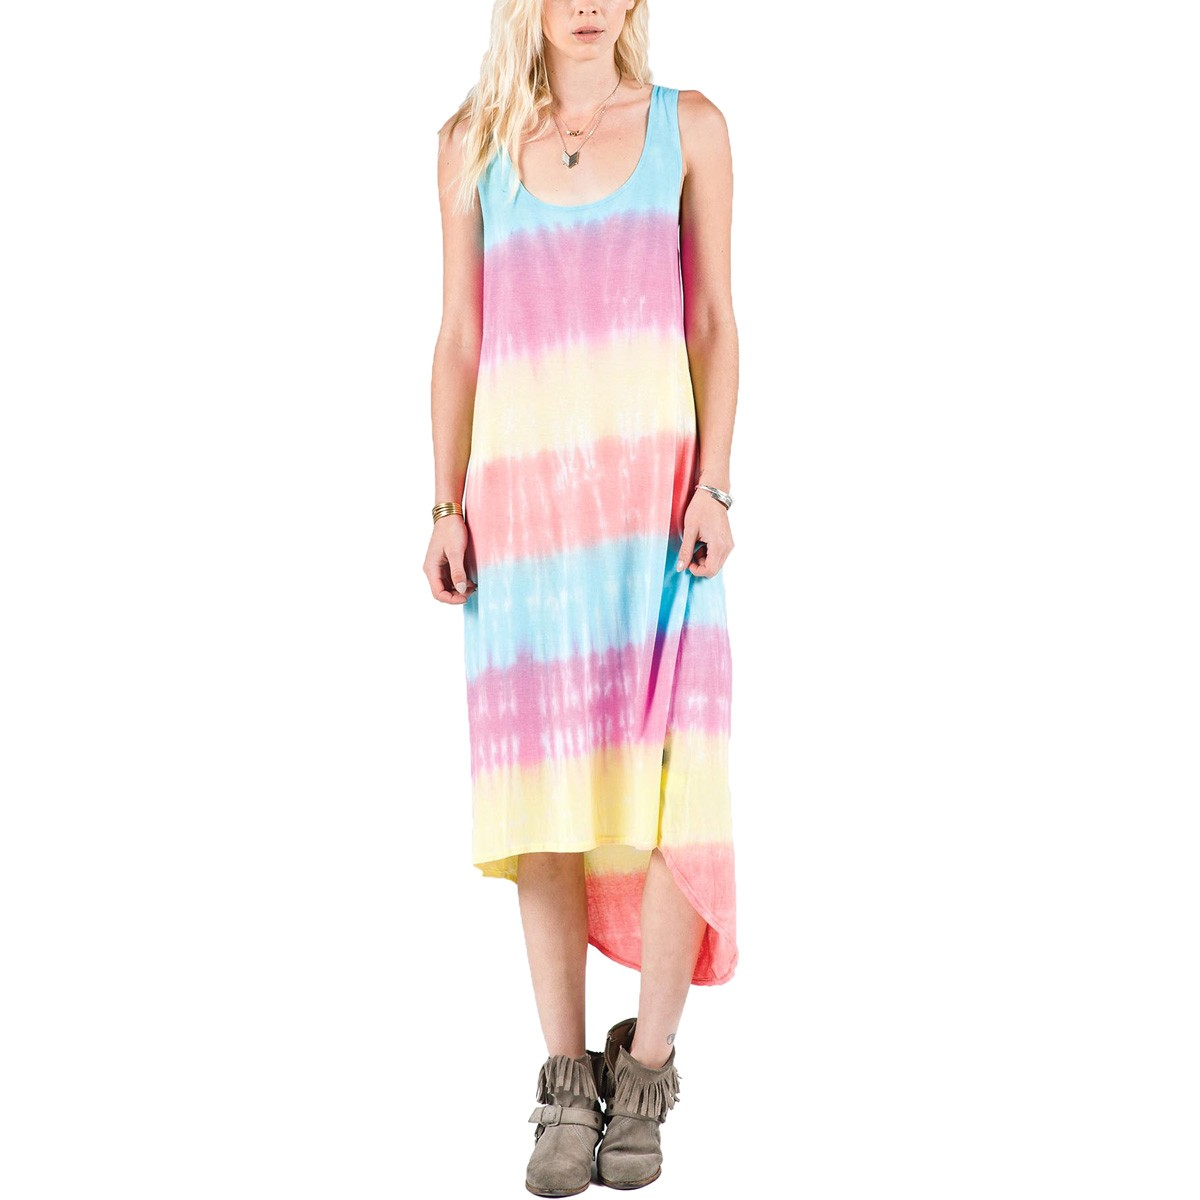 Volcom Call It Off Dress - Multi